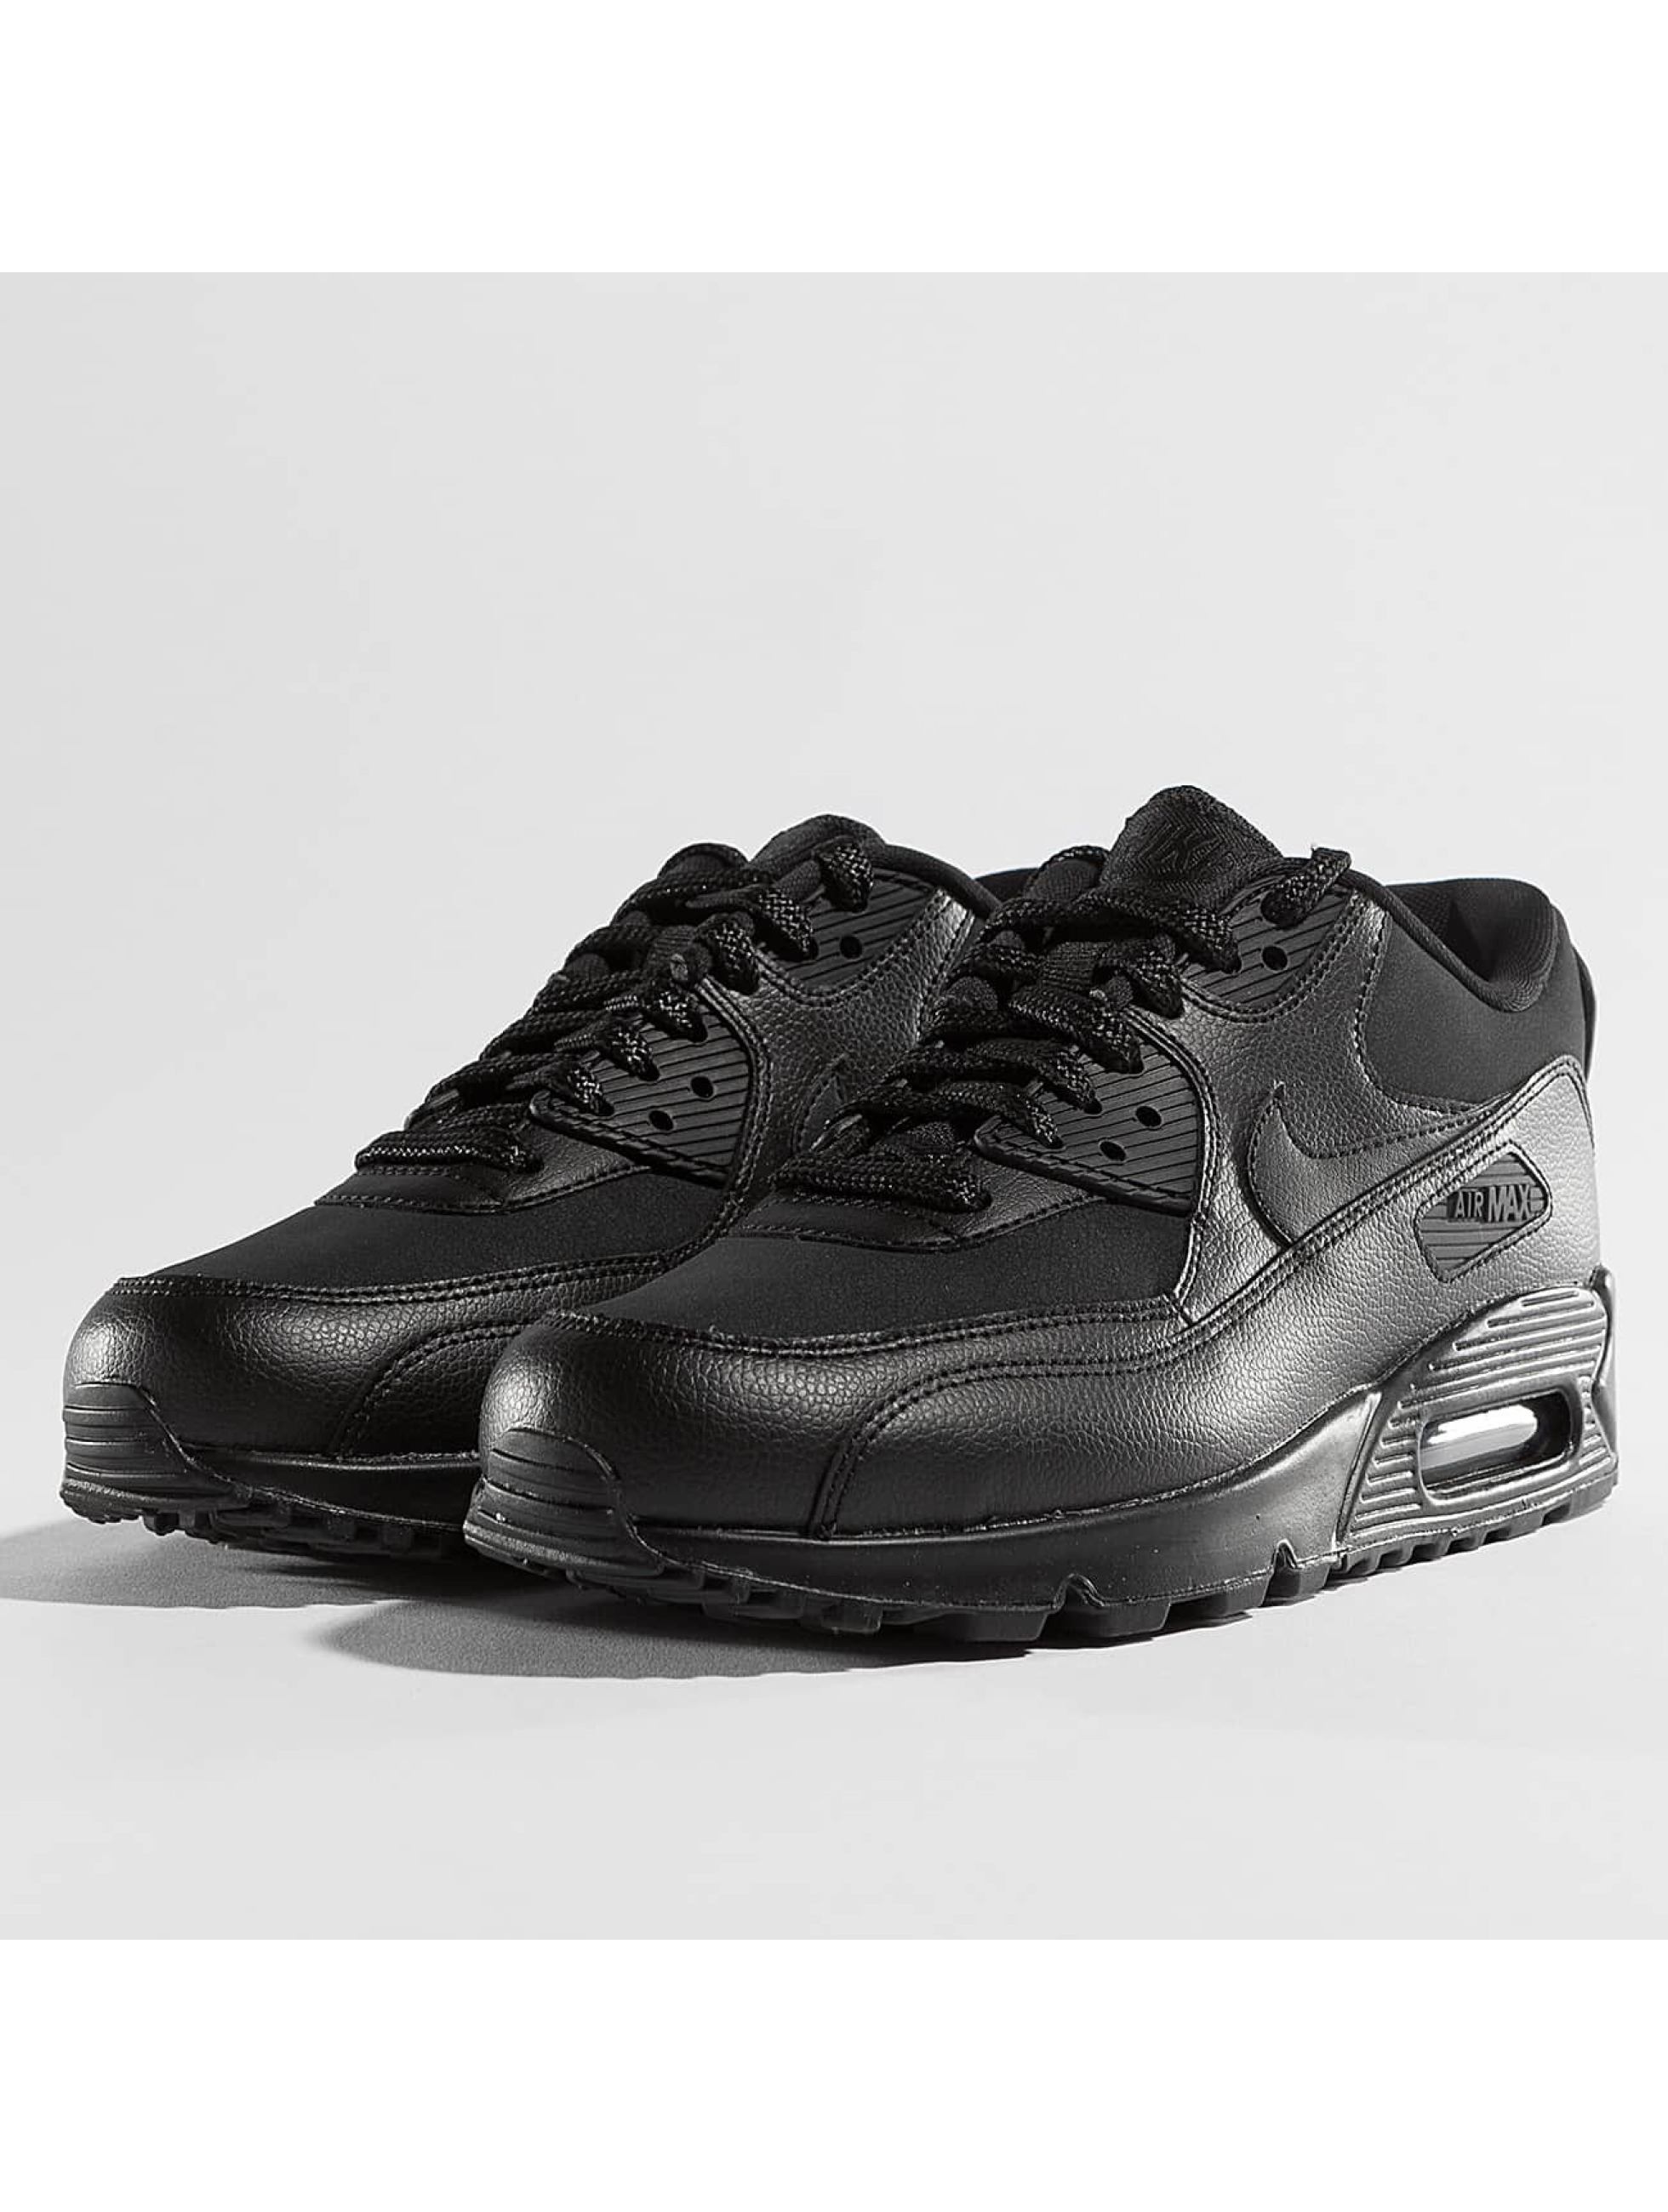 nike damen sneaker air max 90 leather in schwarz 335383. Black Bedroom Furniture Sets. Home Design Ideas